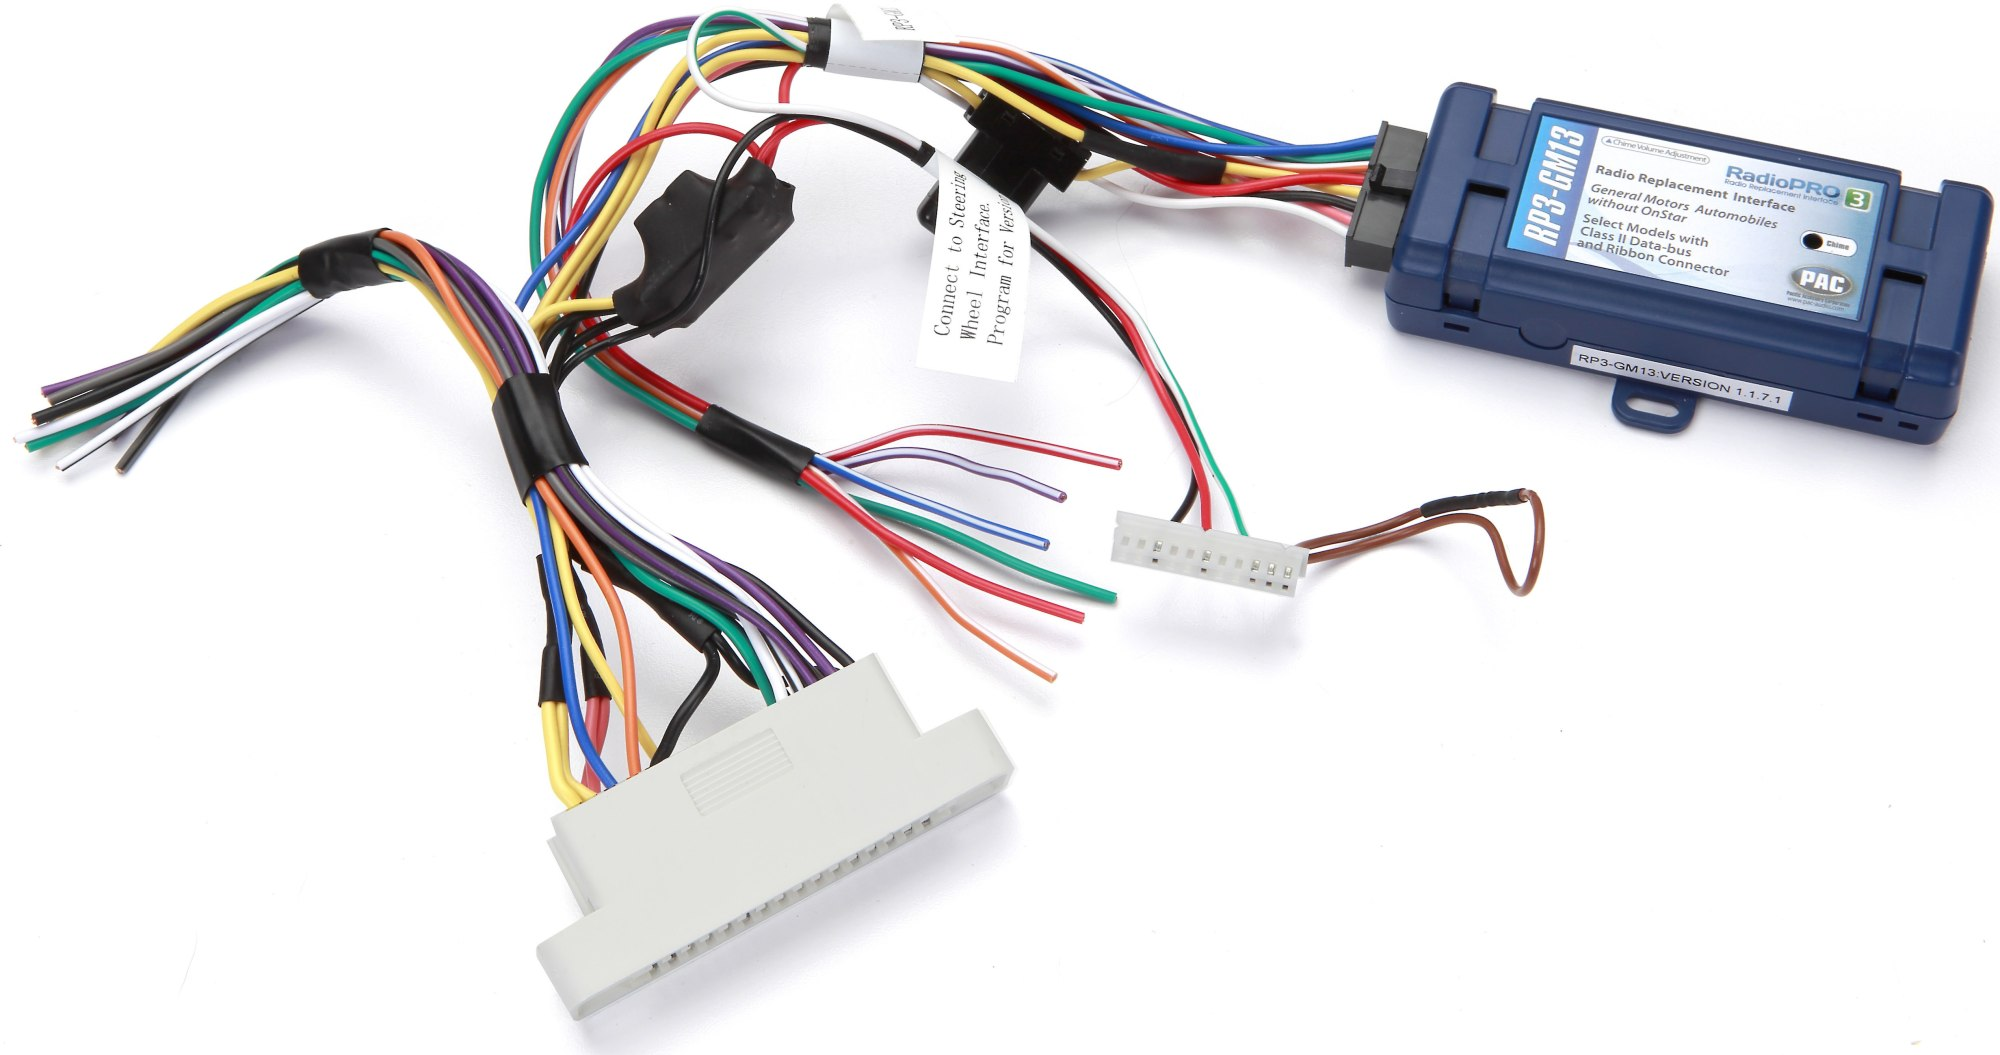 hight resolution of pac rp3 gm13 wiring interface allows you to connect a new car stereo general motors 20002005 radio wiring harness interface gmrc04 by